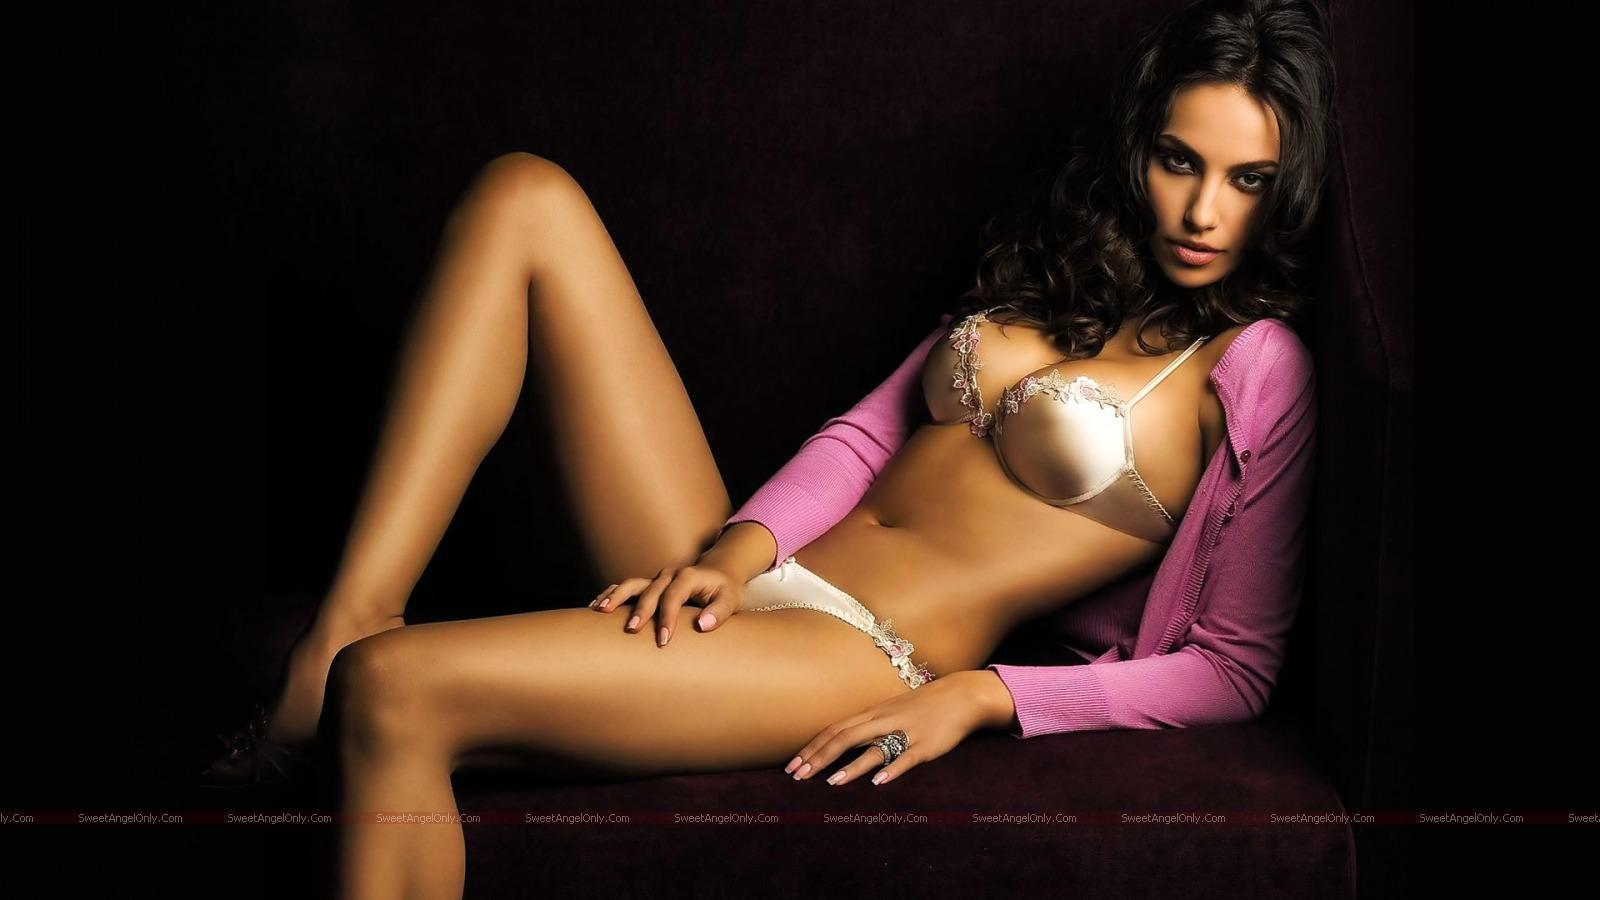 http://4.bp.blogspot.com/_jJPqWg6V3Y8/TUArvJ9xatI/AAAAAAAAD3s/gwHw-r5X0wk/s1600/hollywood_hot_actress_wallpapers_23.jpg